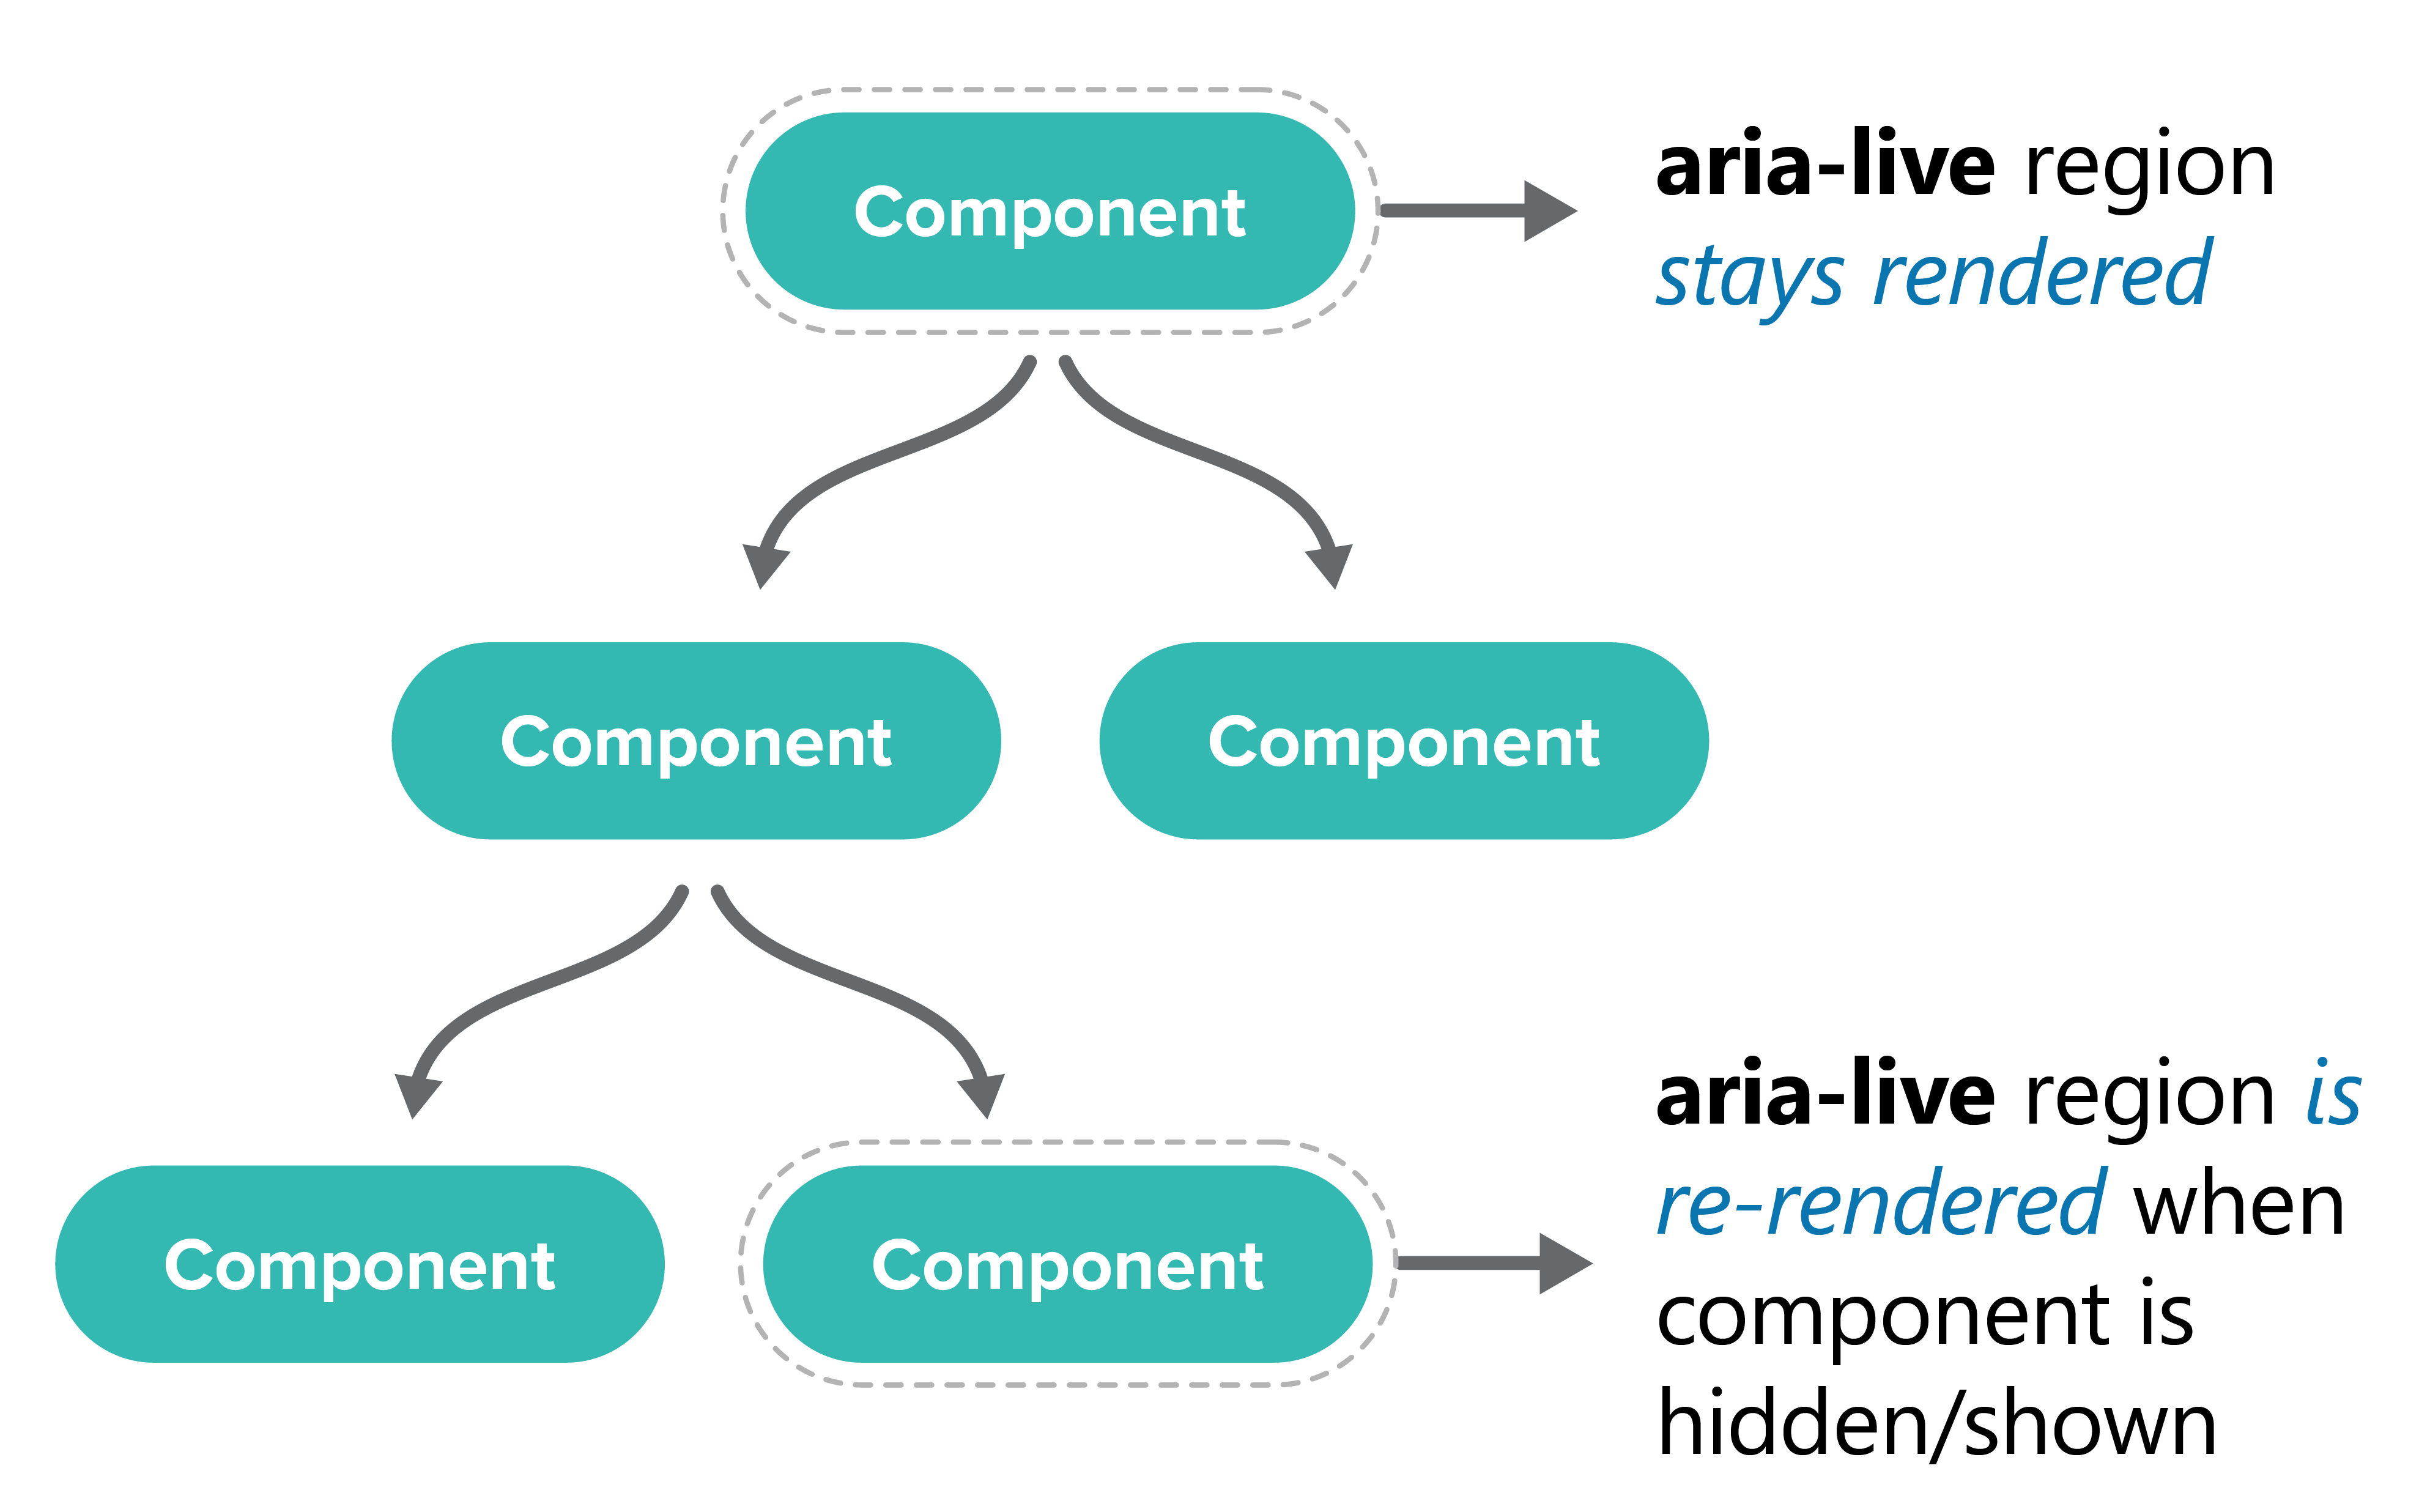 Illustrates that the aria live region is more stable when rendered in the root component.